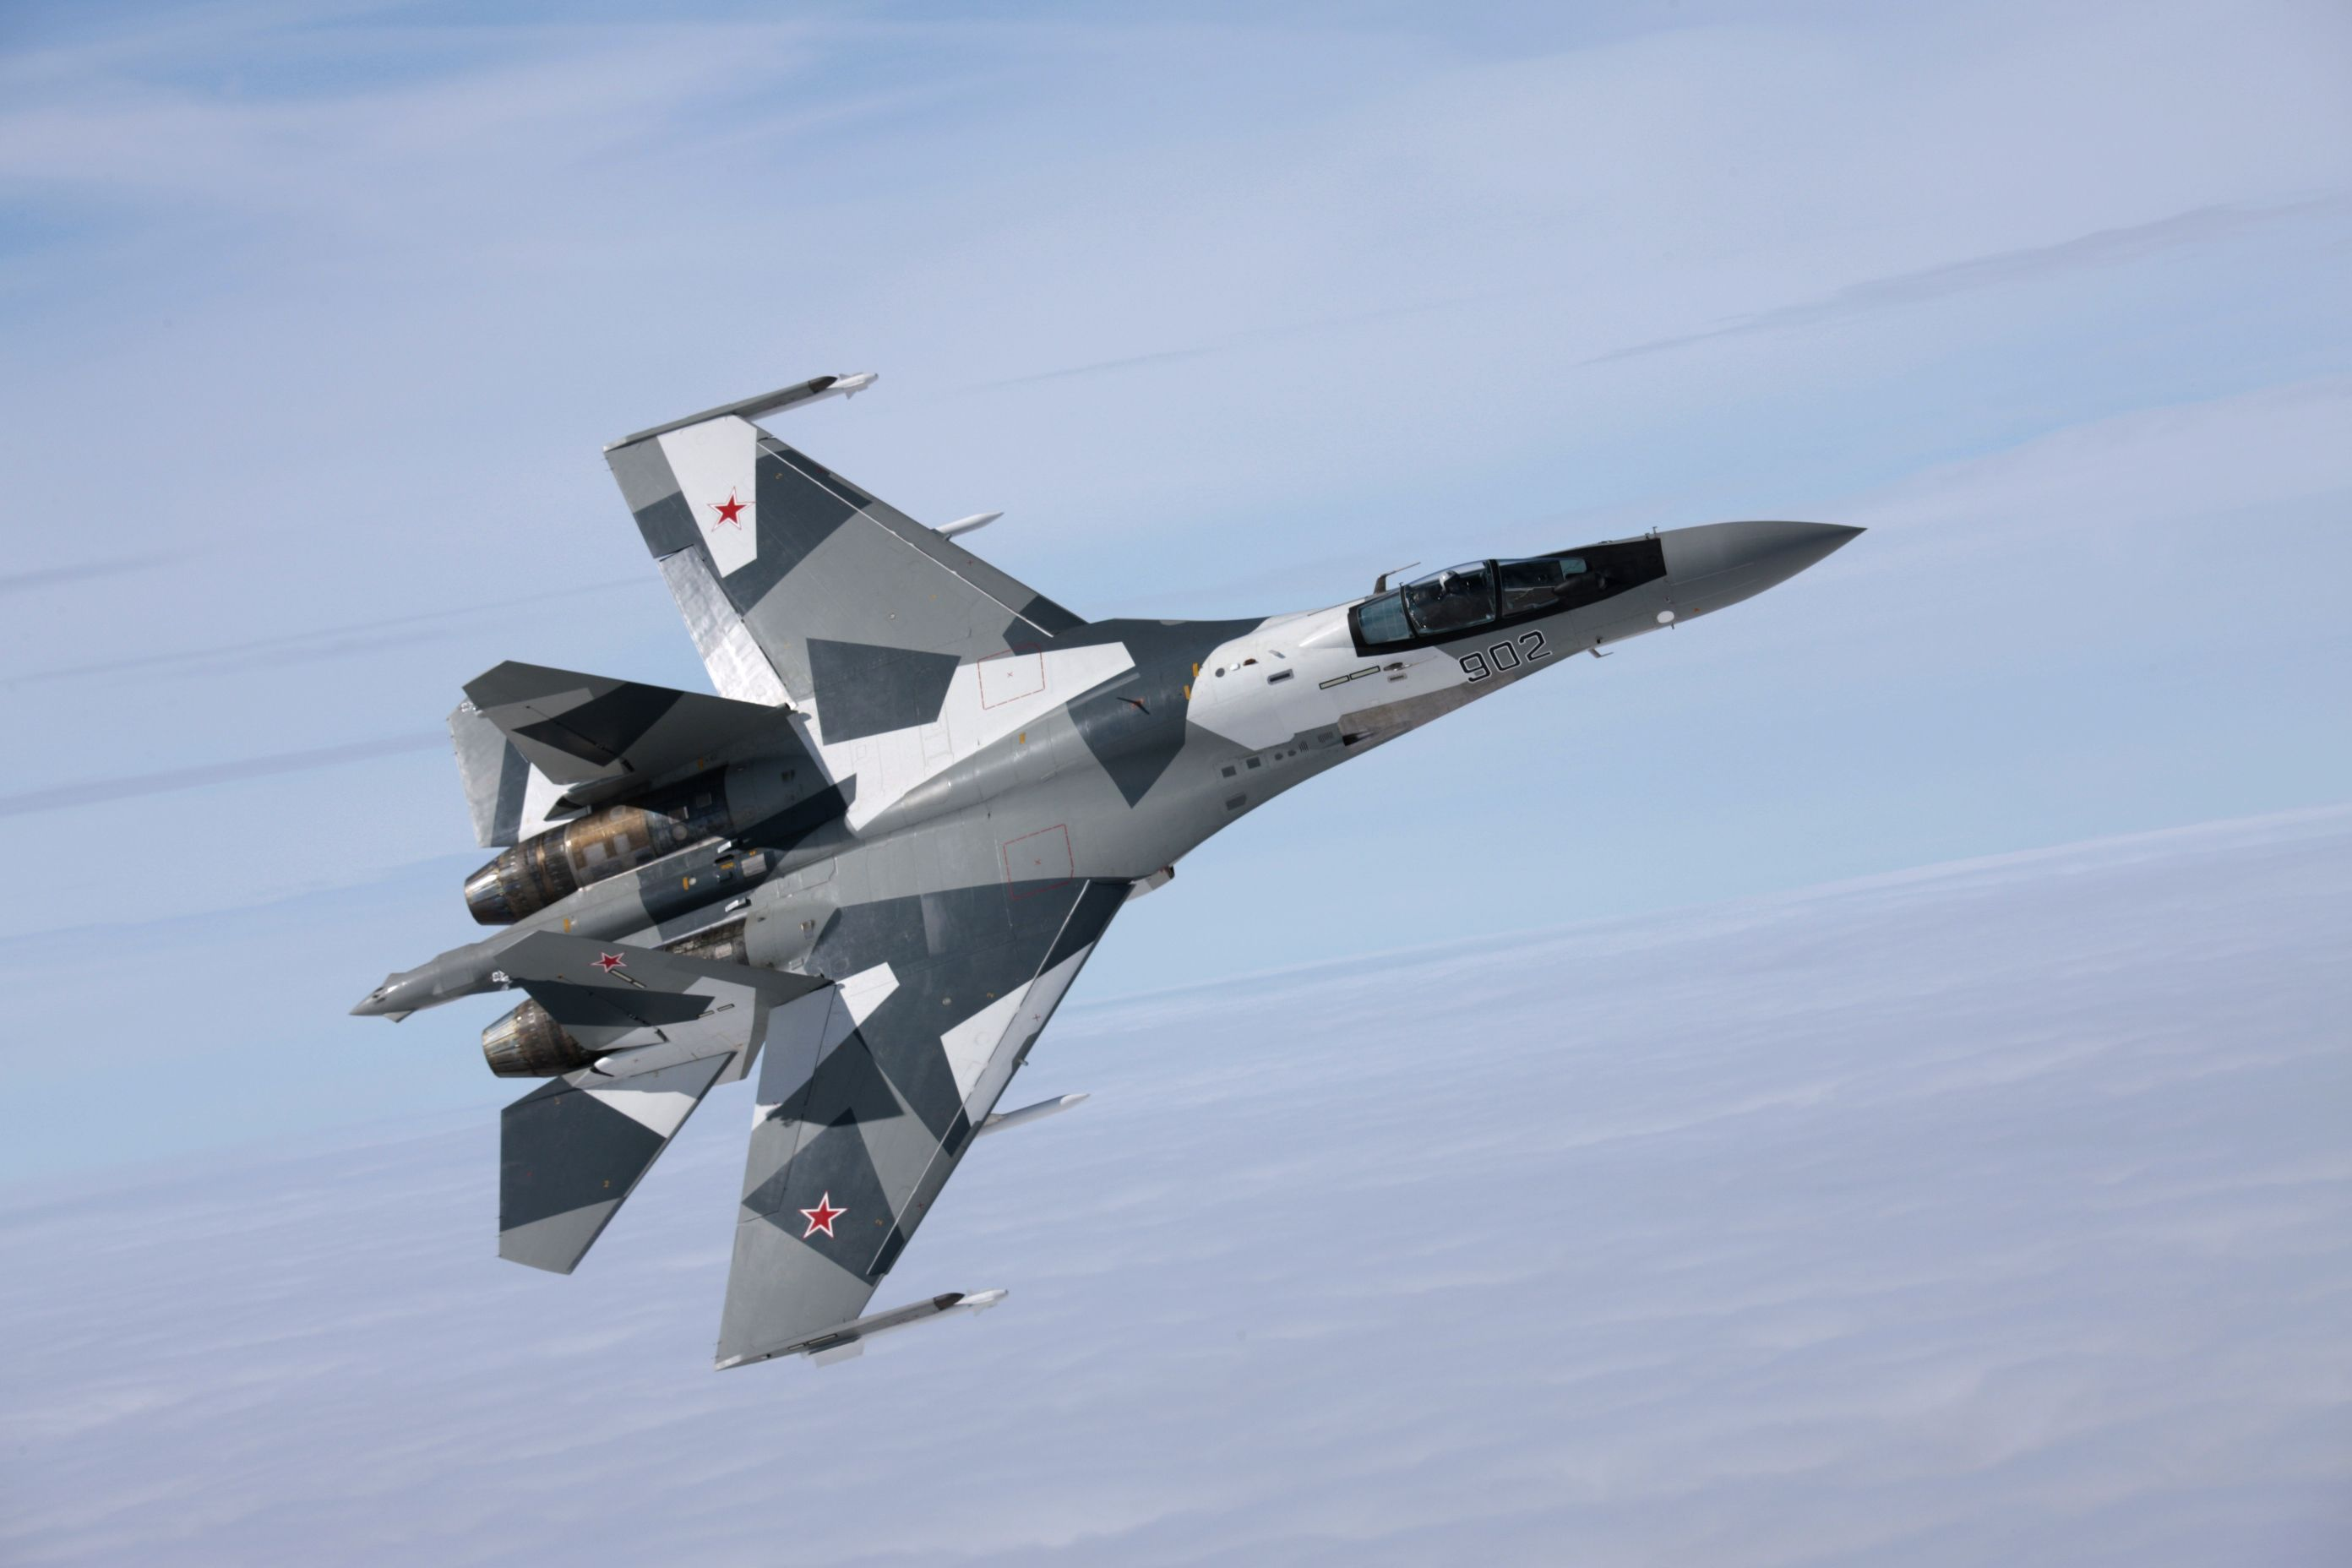 50 sukhoi t 50 pak fa wallpapers hd desktop and mobile backgrounds - Car Wallpapers